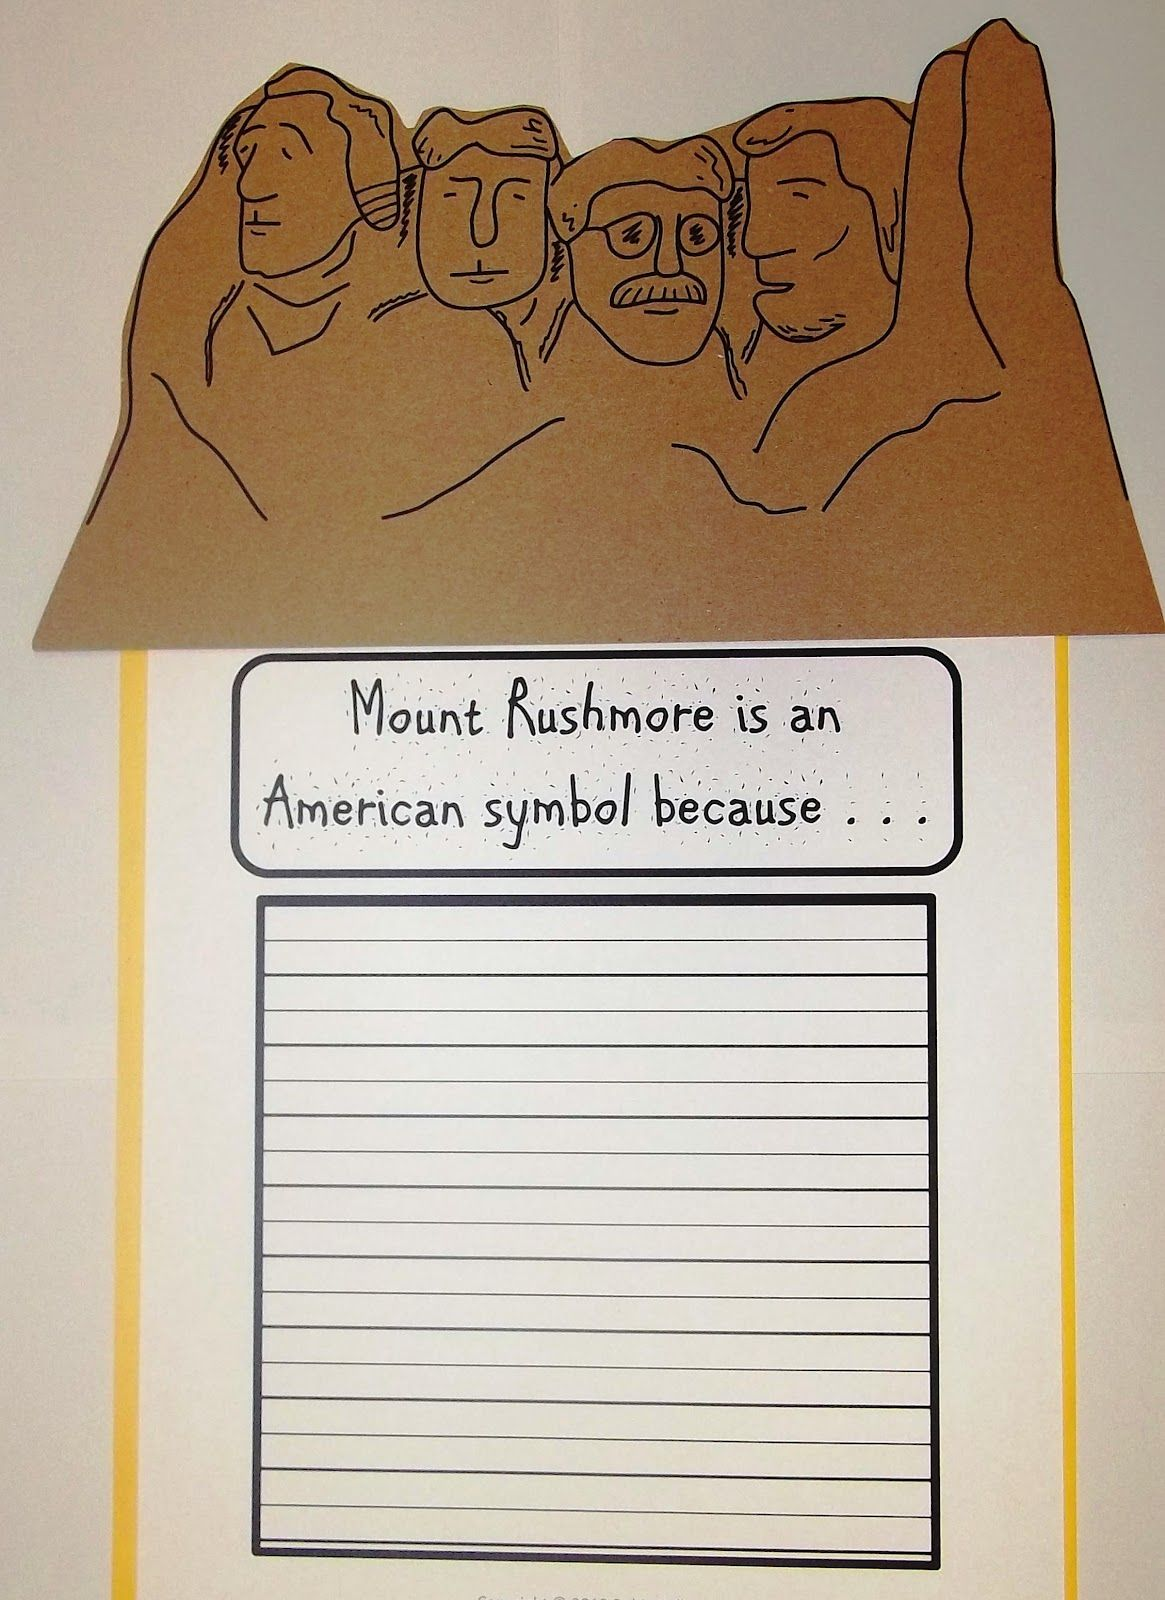 Mount rushmore clipart craft. American symbols for kids